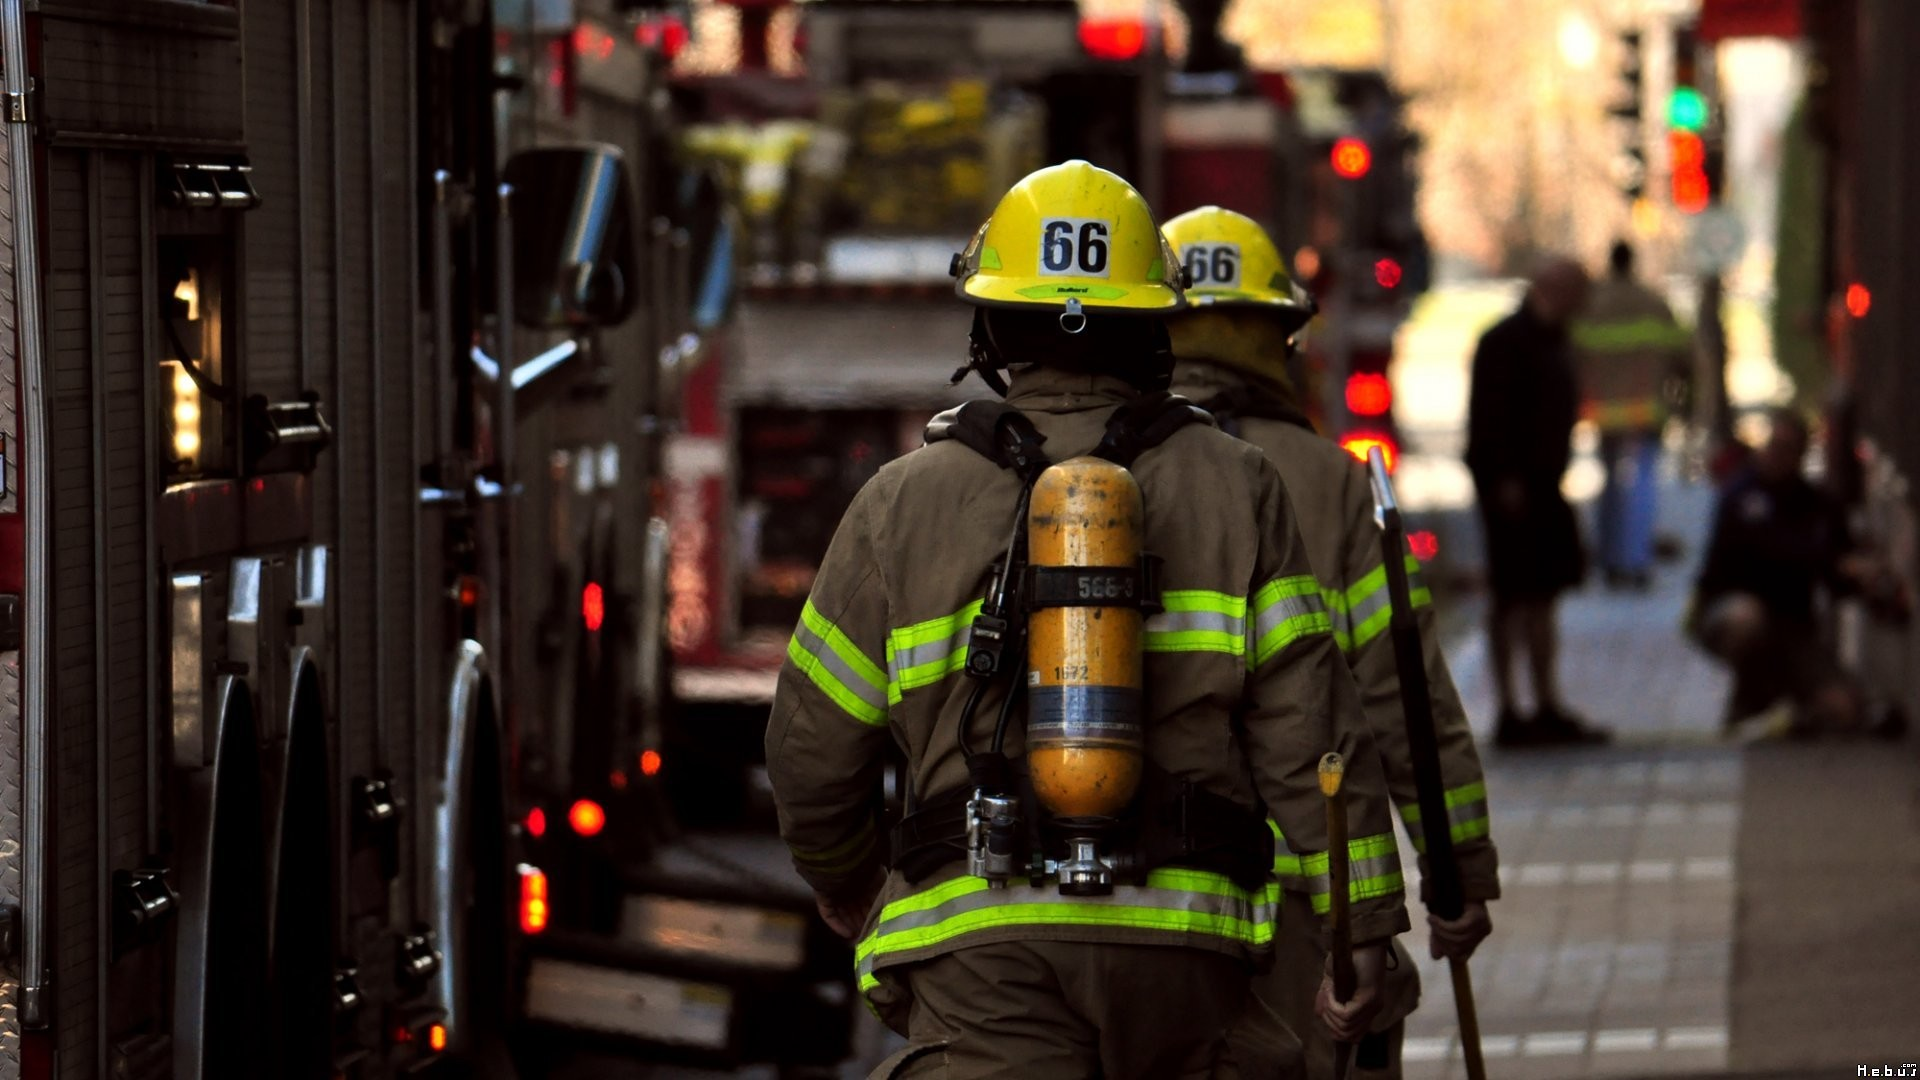 Firefighter Streets Urban Fireman Wallpaper firemans on 1920x1080